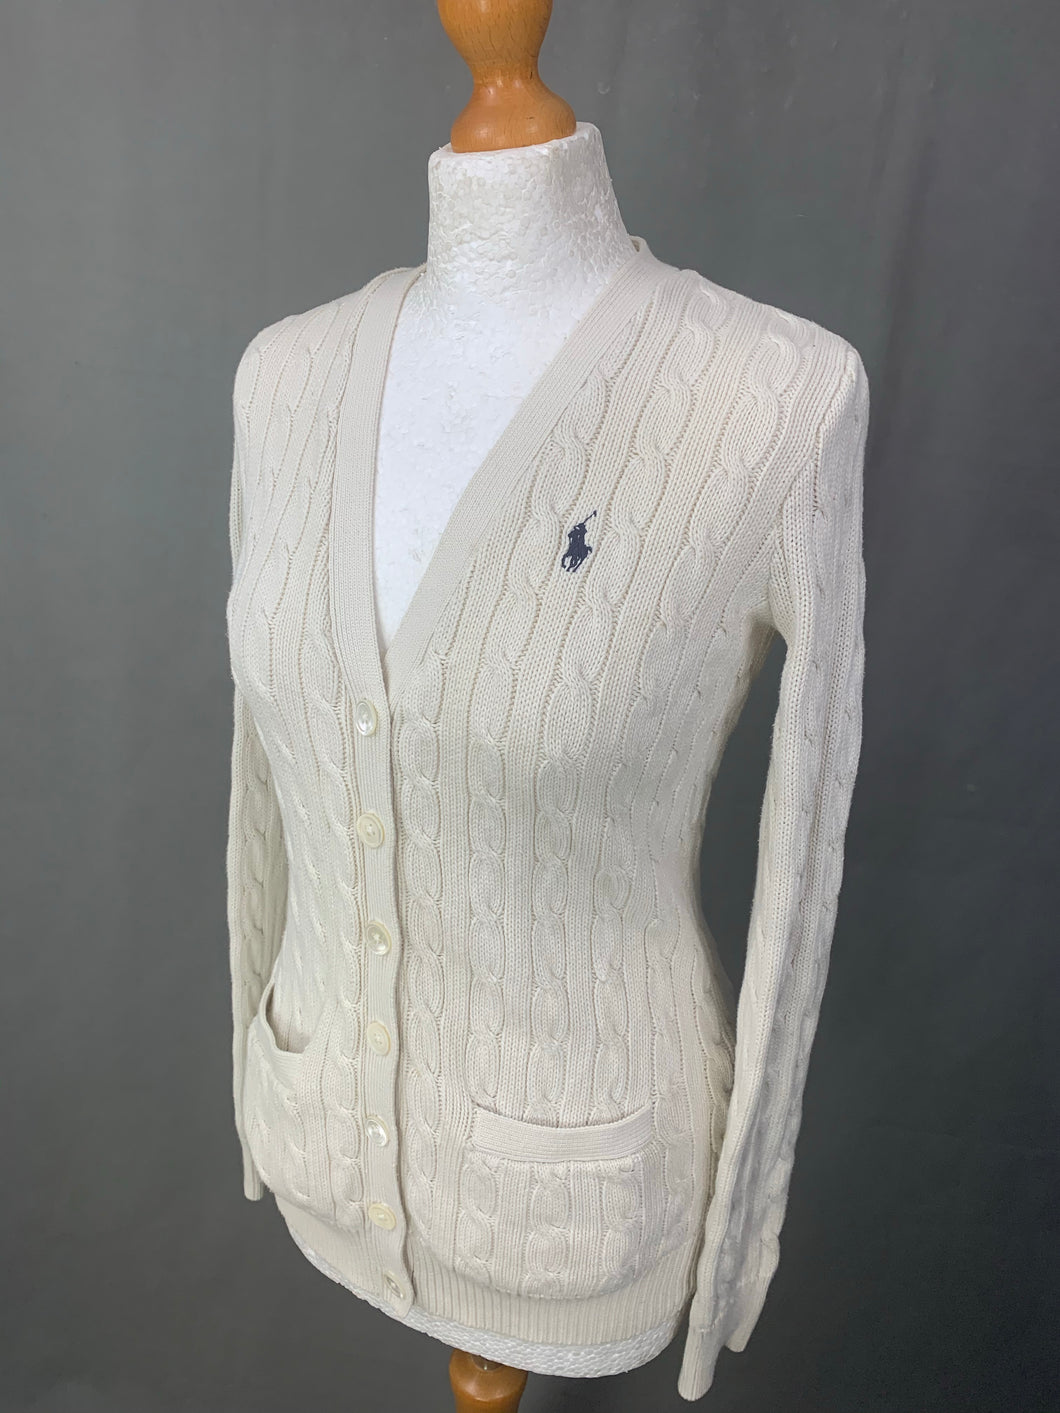 RALPH LAUREN Ladies Cable Knit CARDIGAN Size S Small